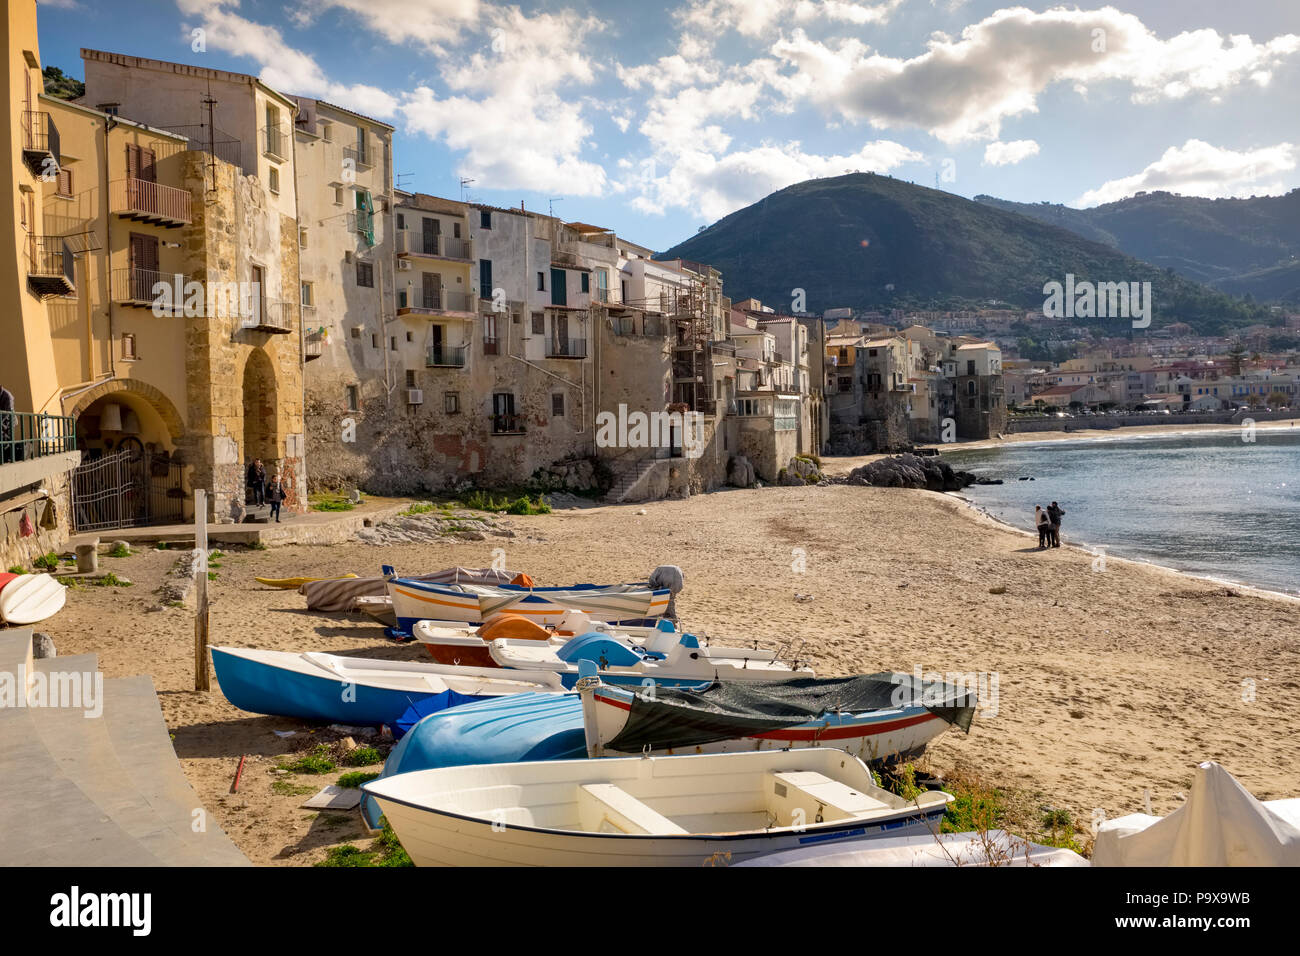 Sicily, Italy - beach with medieval fishermen's houses on the seafront in Cefalu town, Sicily - Stock Image